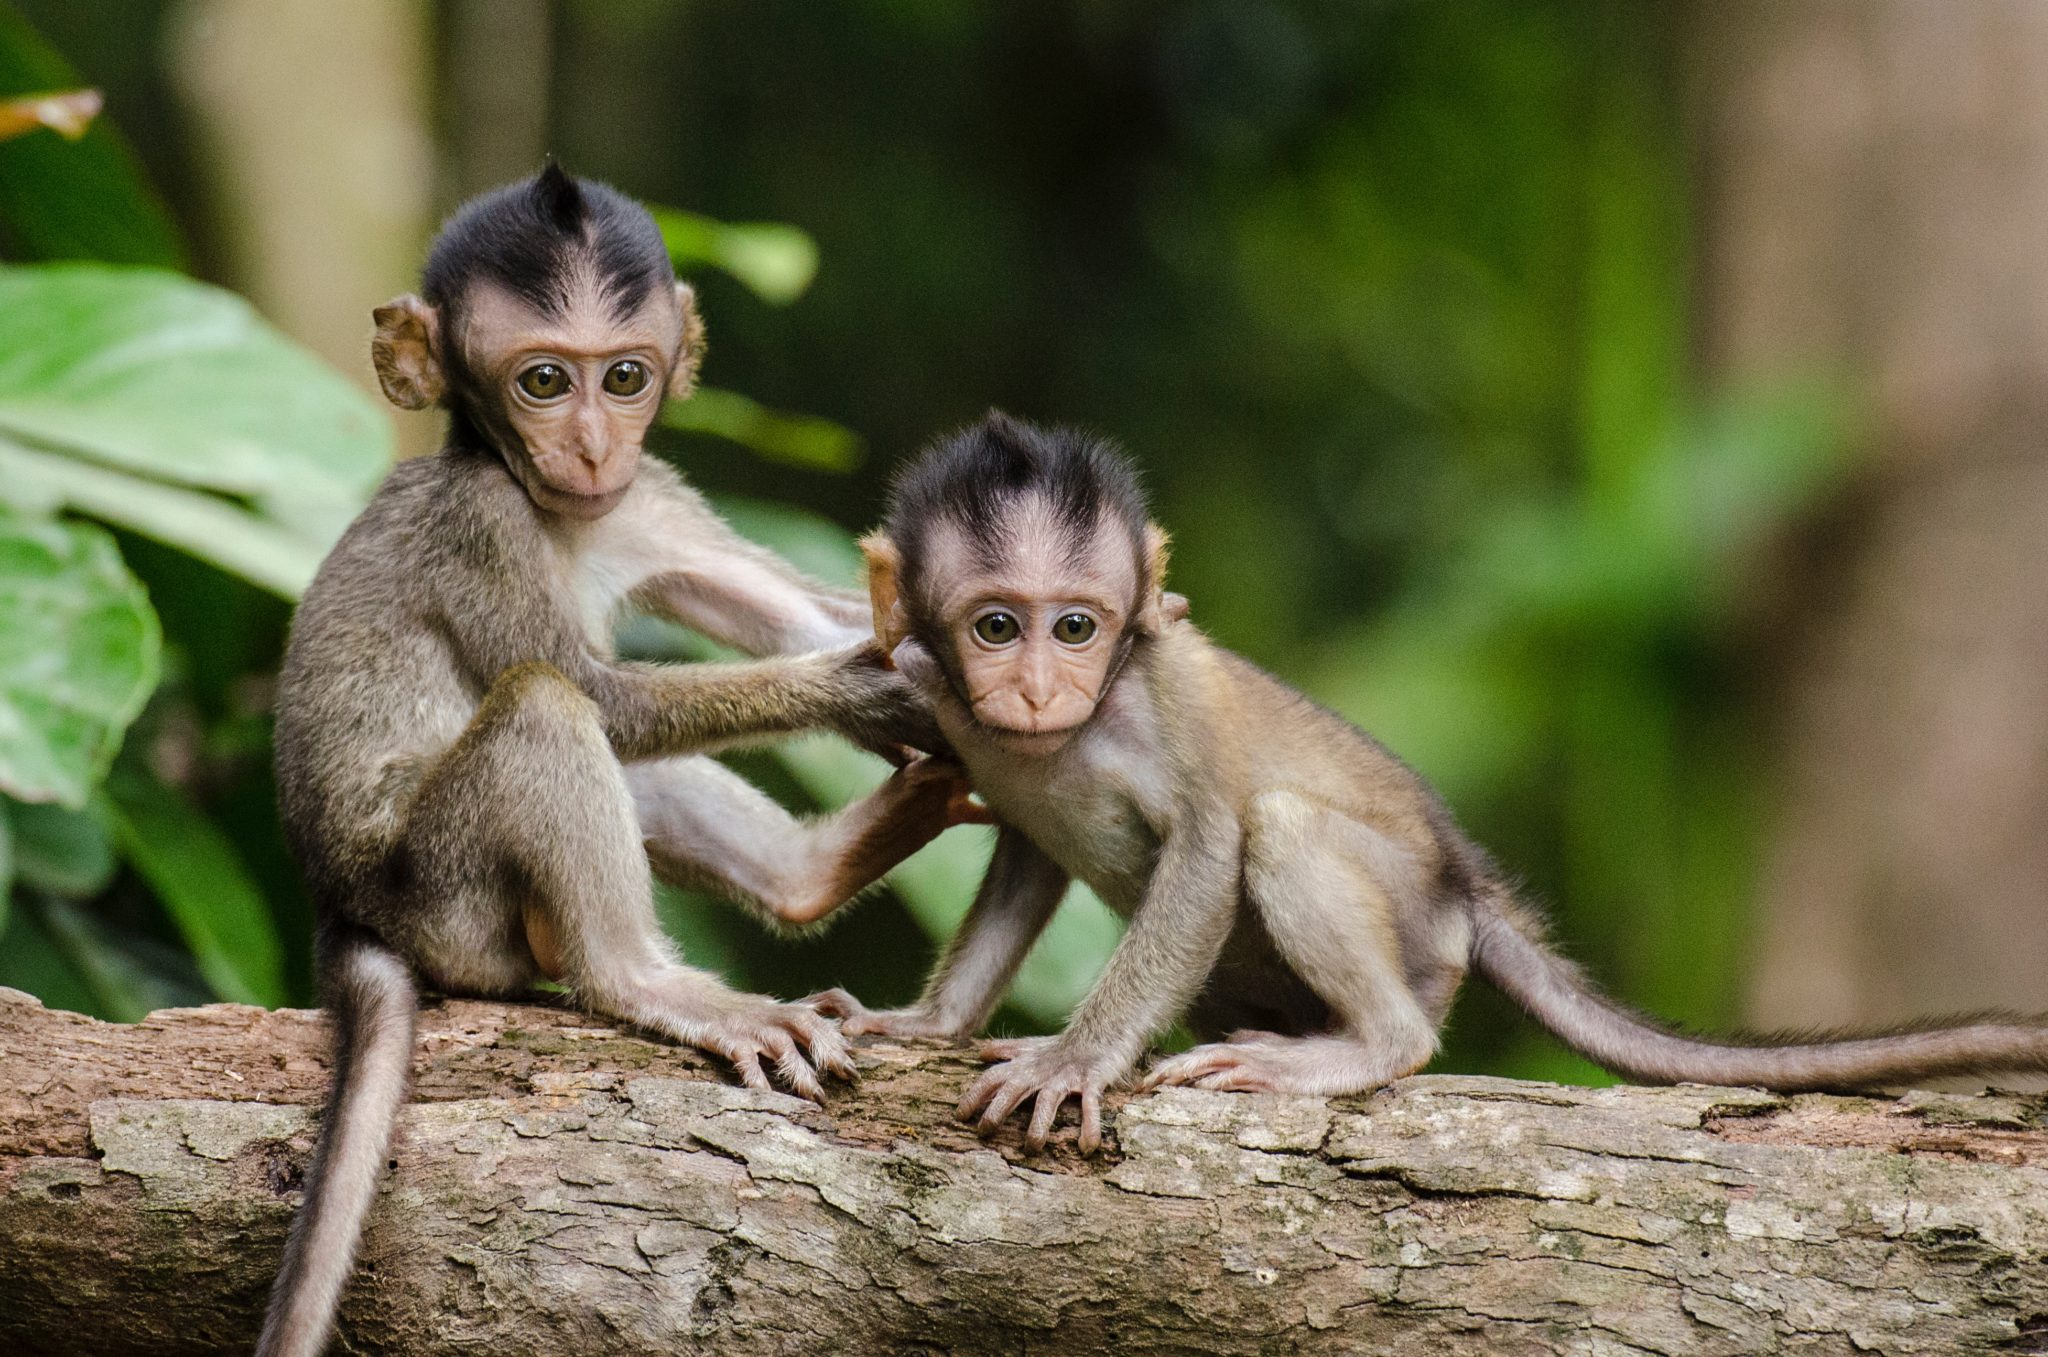 Teaching Sharing: 1 Tip You Should Know! 2 monkeys on a log